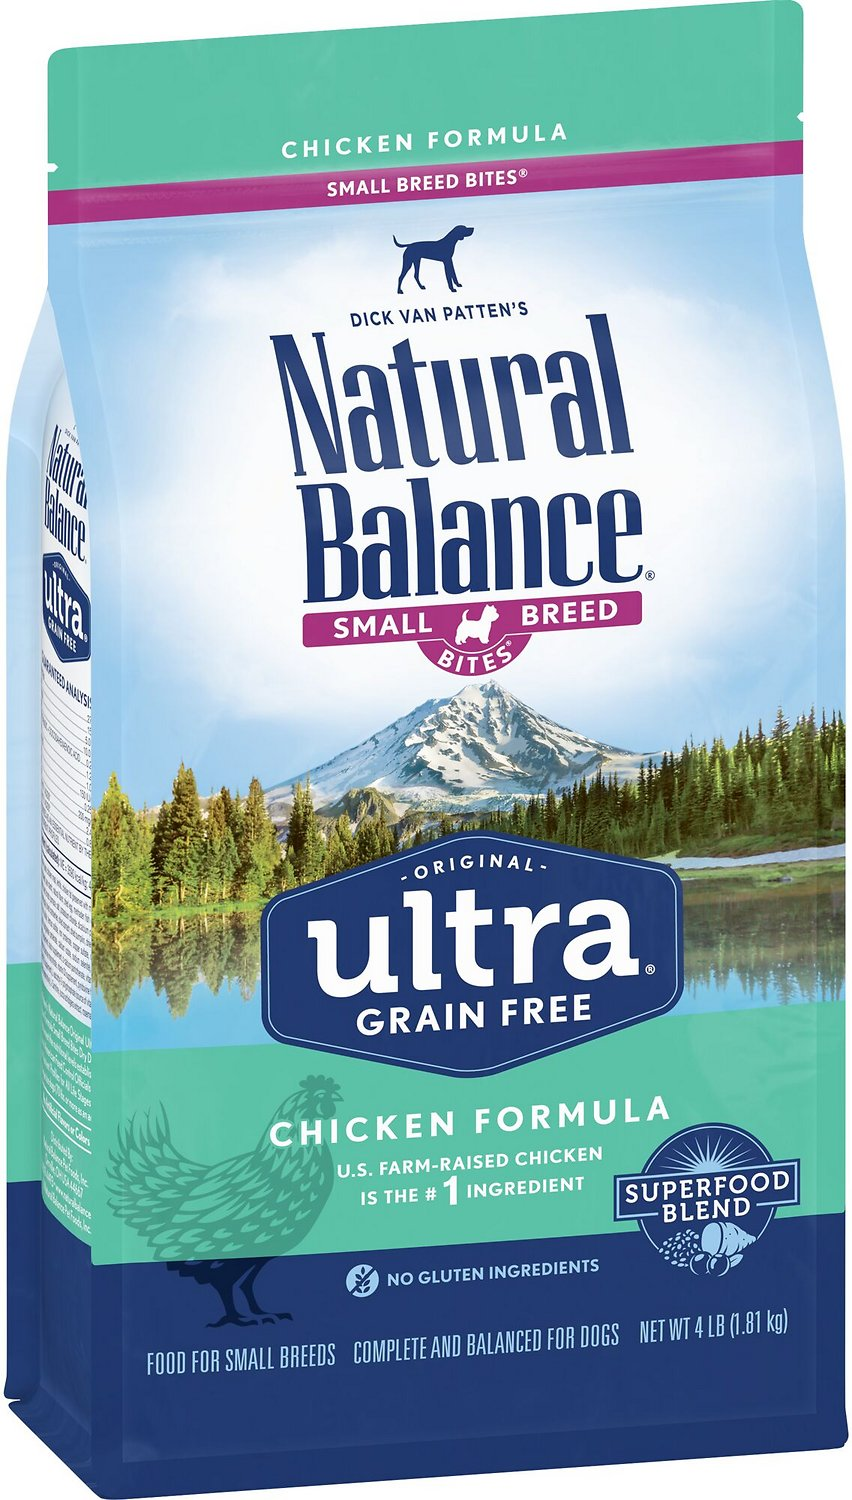 Natural Balance Original Ultra Grain-Free Chicken Formula Small Breed Dry Dog Food, 4-lb